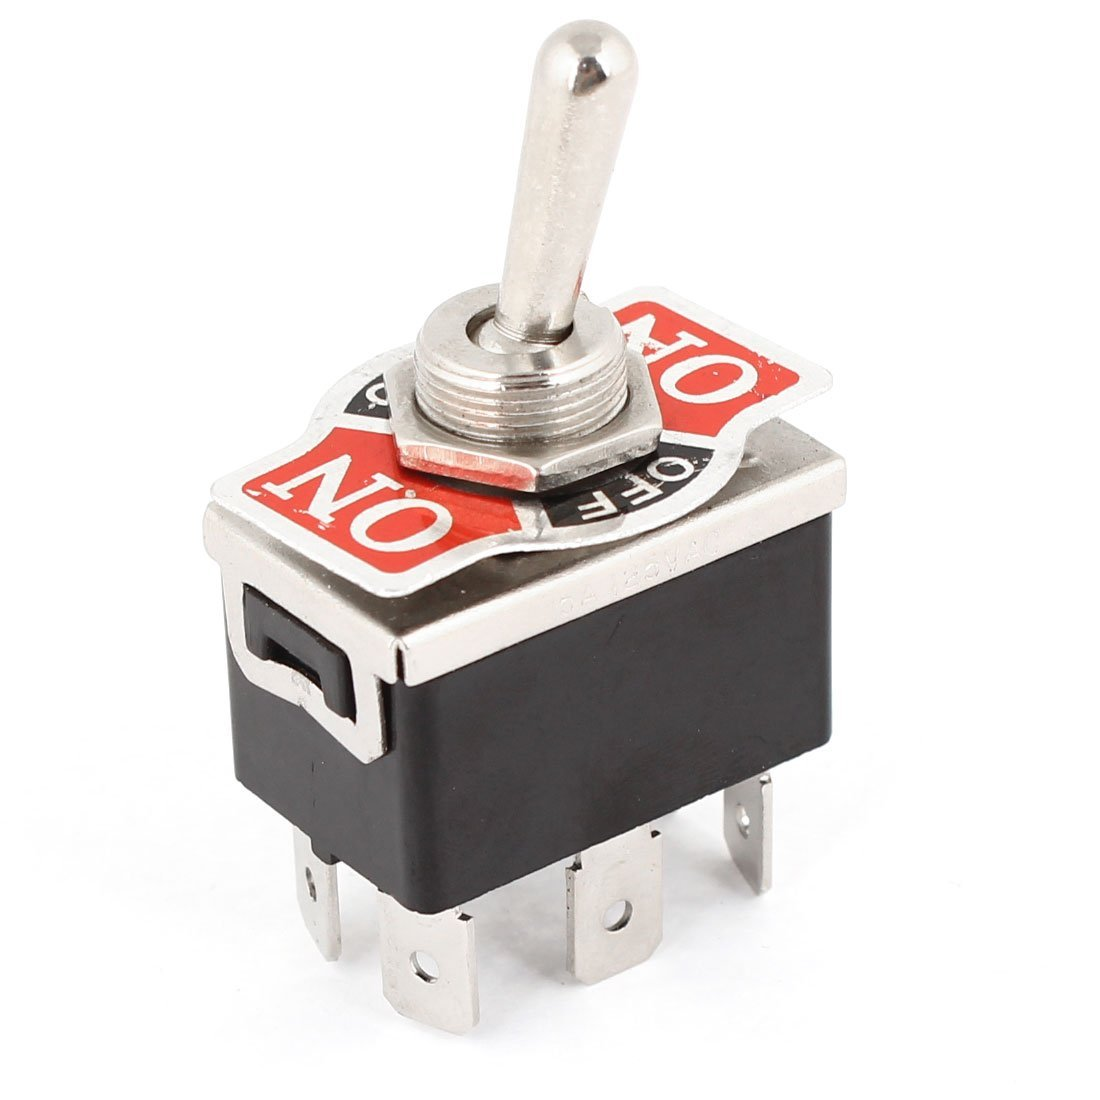 New Ac 250v/10a 125v/15a Dpdt 3 Position On/off/on 6 Pins Toggle Switch Black+silver Lighting Accessories